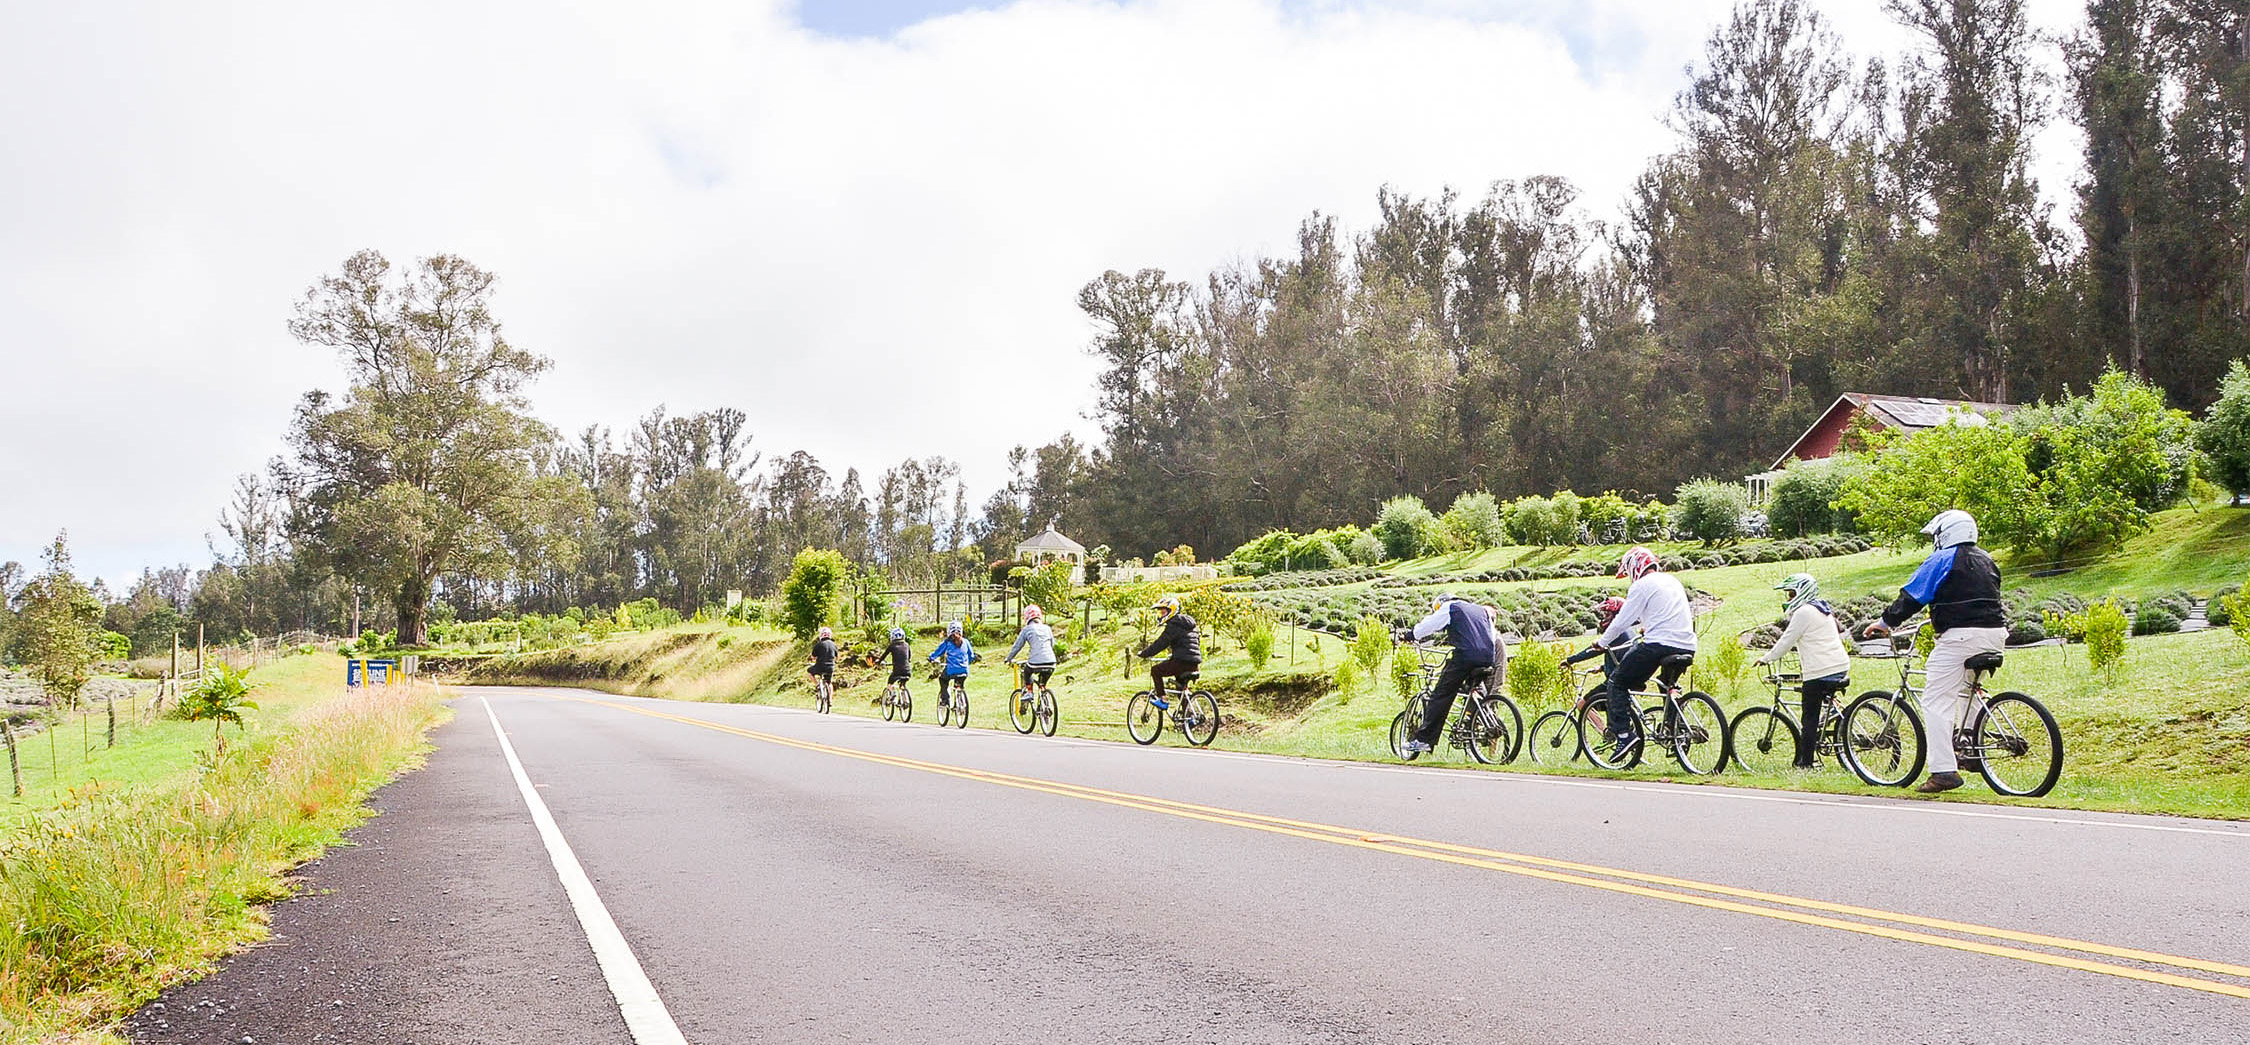 Group-Biking-Haleakala